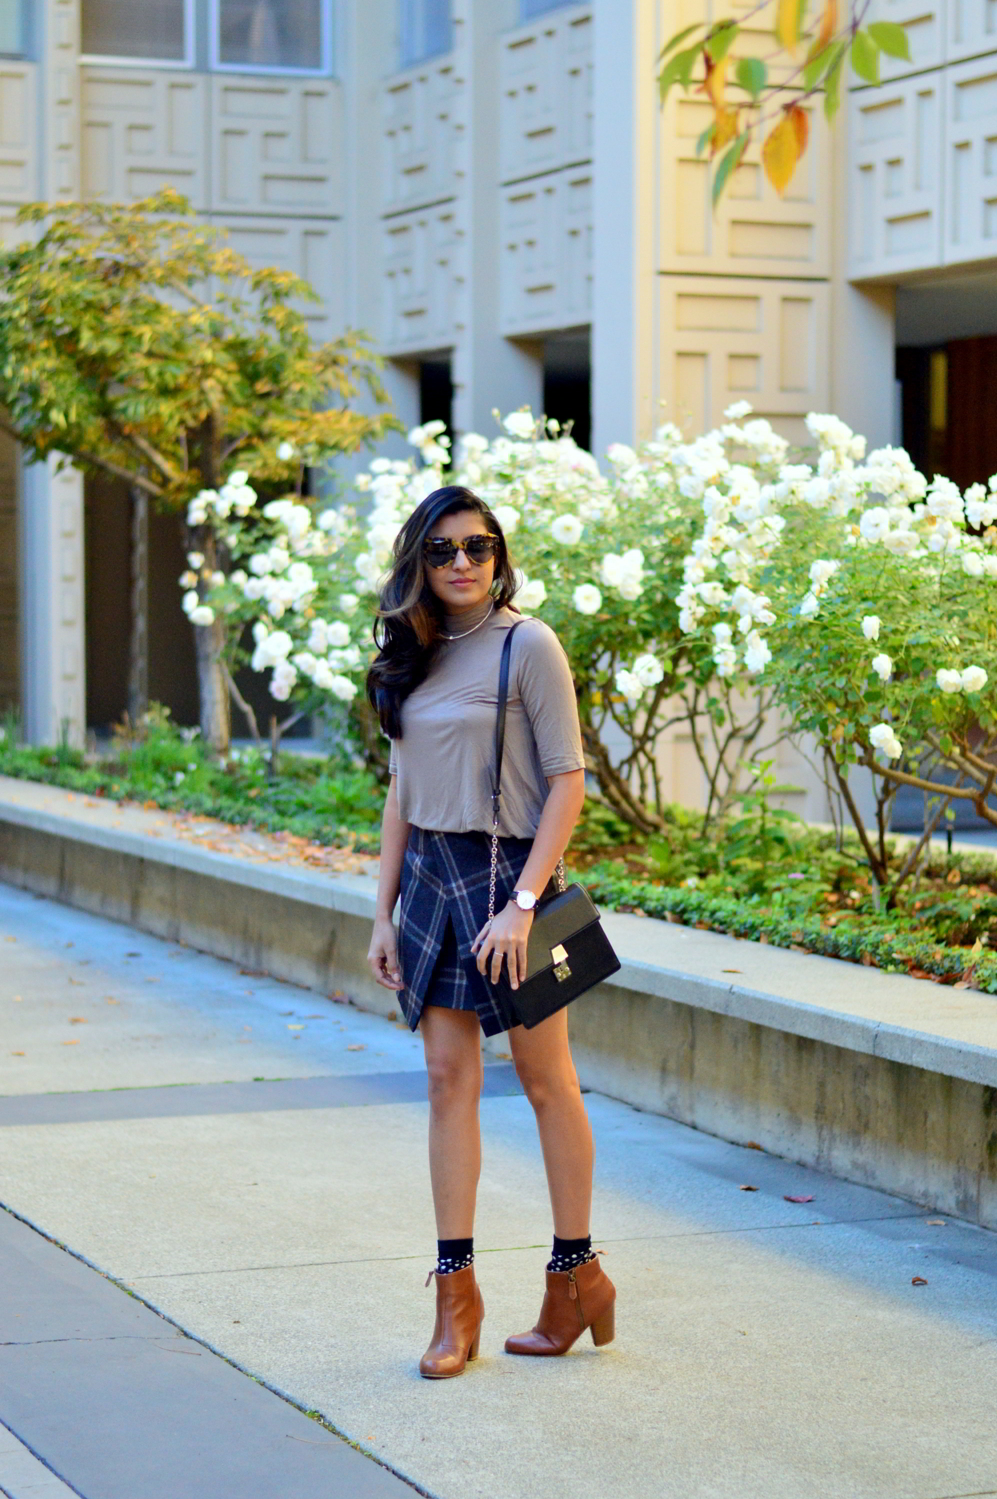 fall-winter-plaid-skirt-turtleneck-style-blogger-outfit-neutrals 1